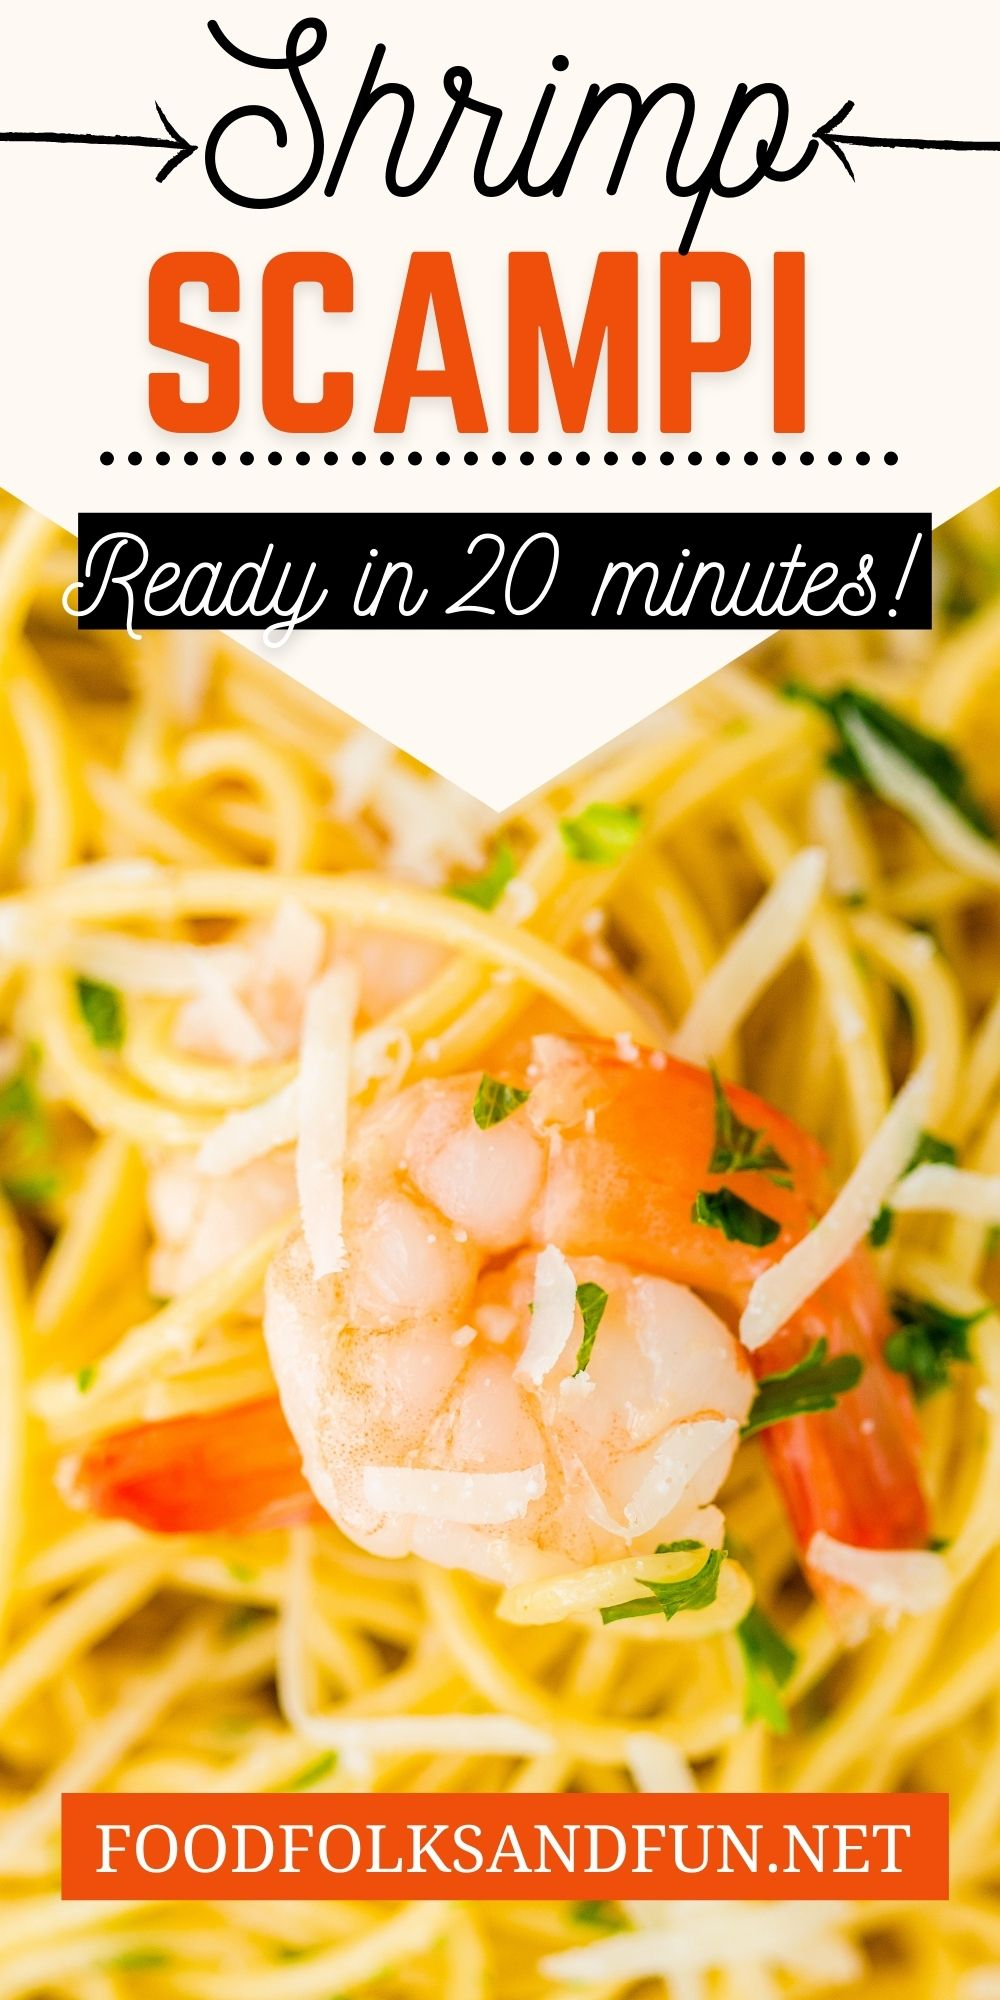 Classic Shrimp Scampi Pasta is an easy Italian comfort food recipe! It's made with butter, garlic, white wine, chicken stock, lemon juice, parsley, and shrimp. via @foodfolksandfun